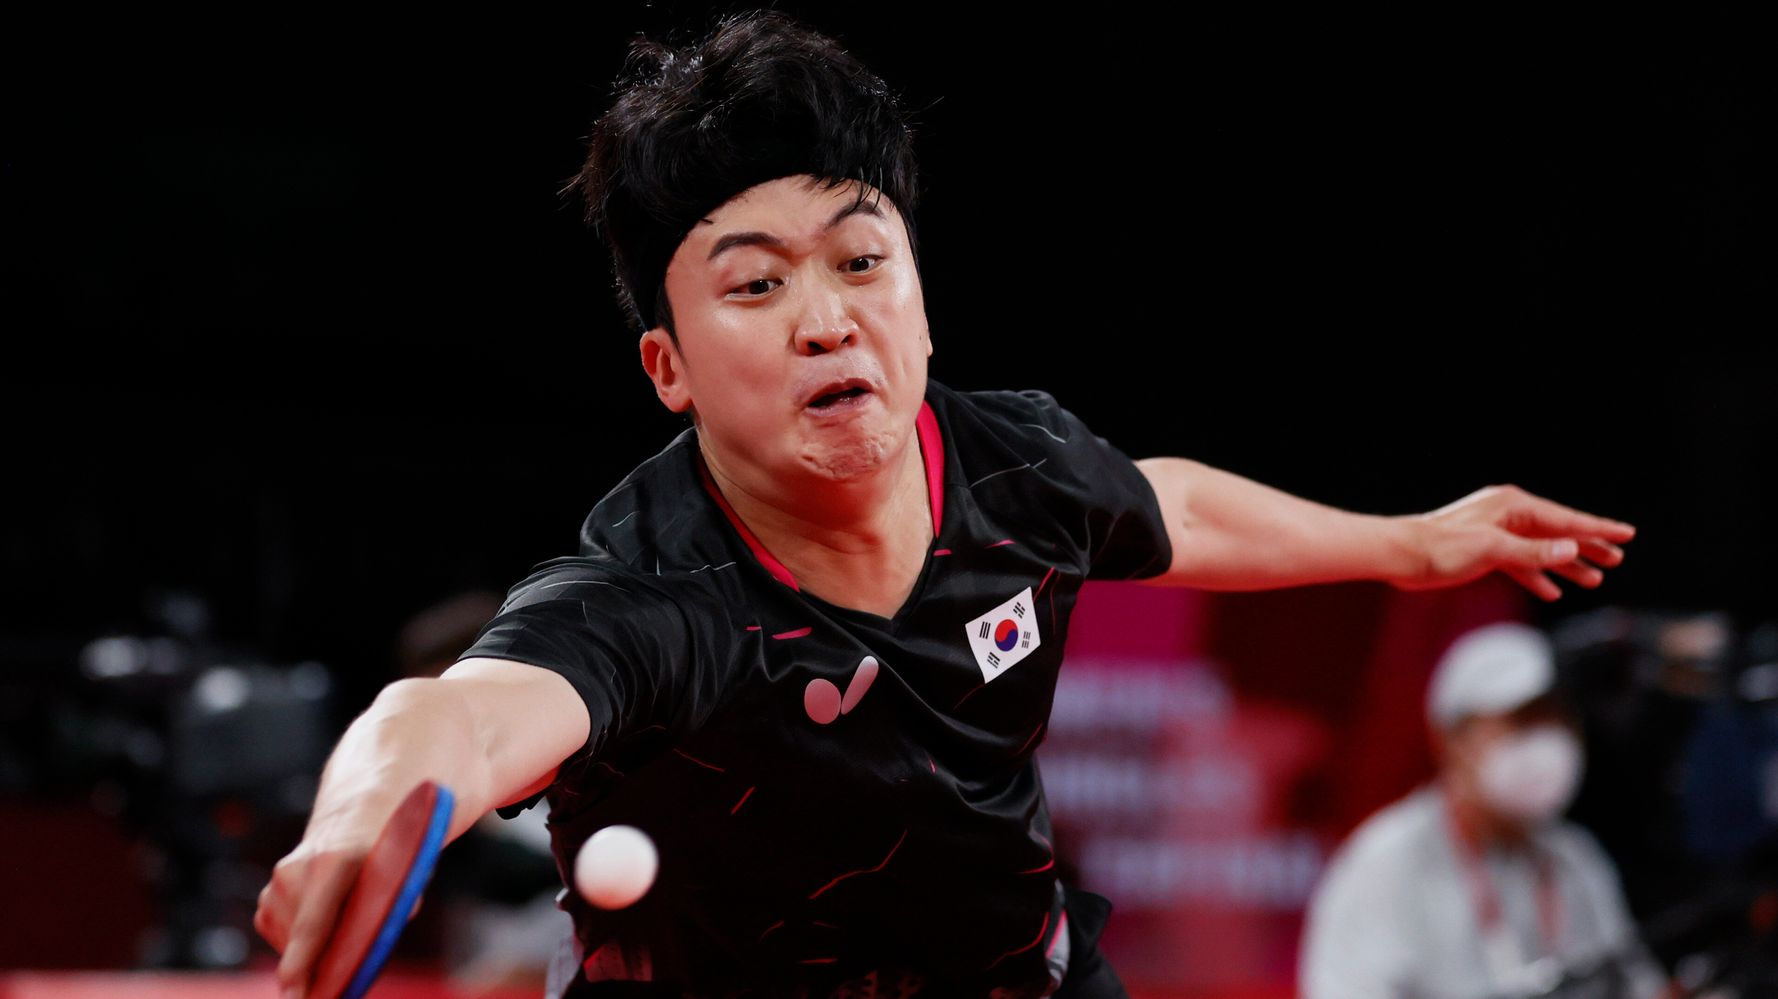 TV Commentator Makes Incredibly Racist Remark About South Korean Table Tennis Player At Olympics